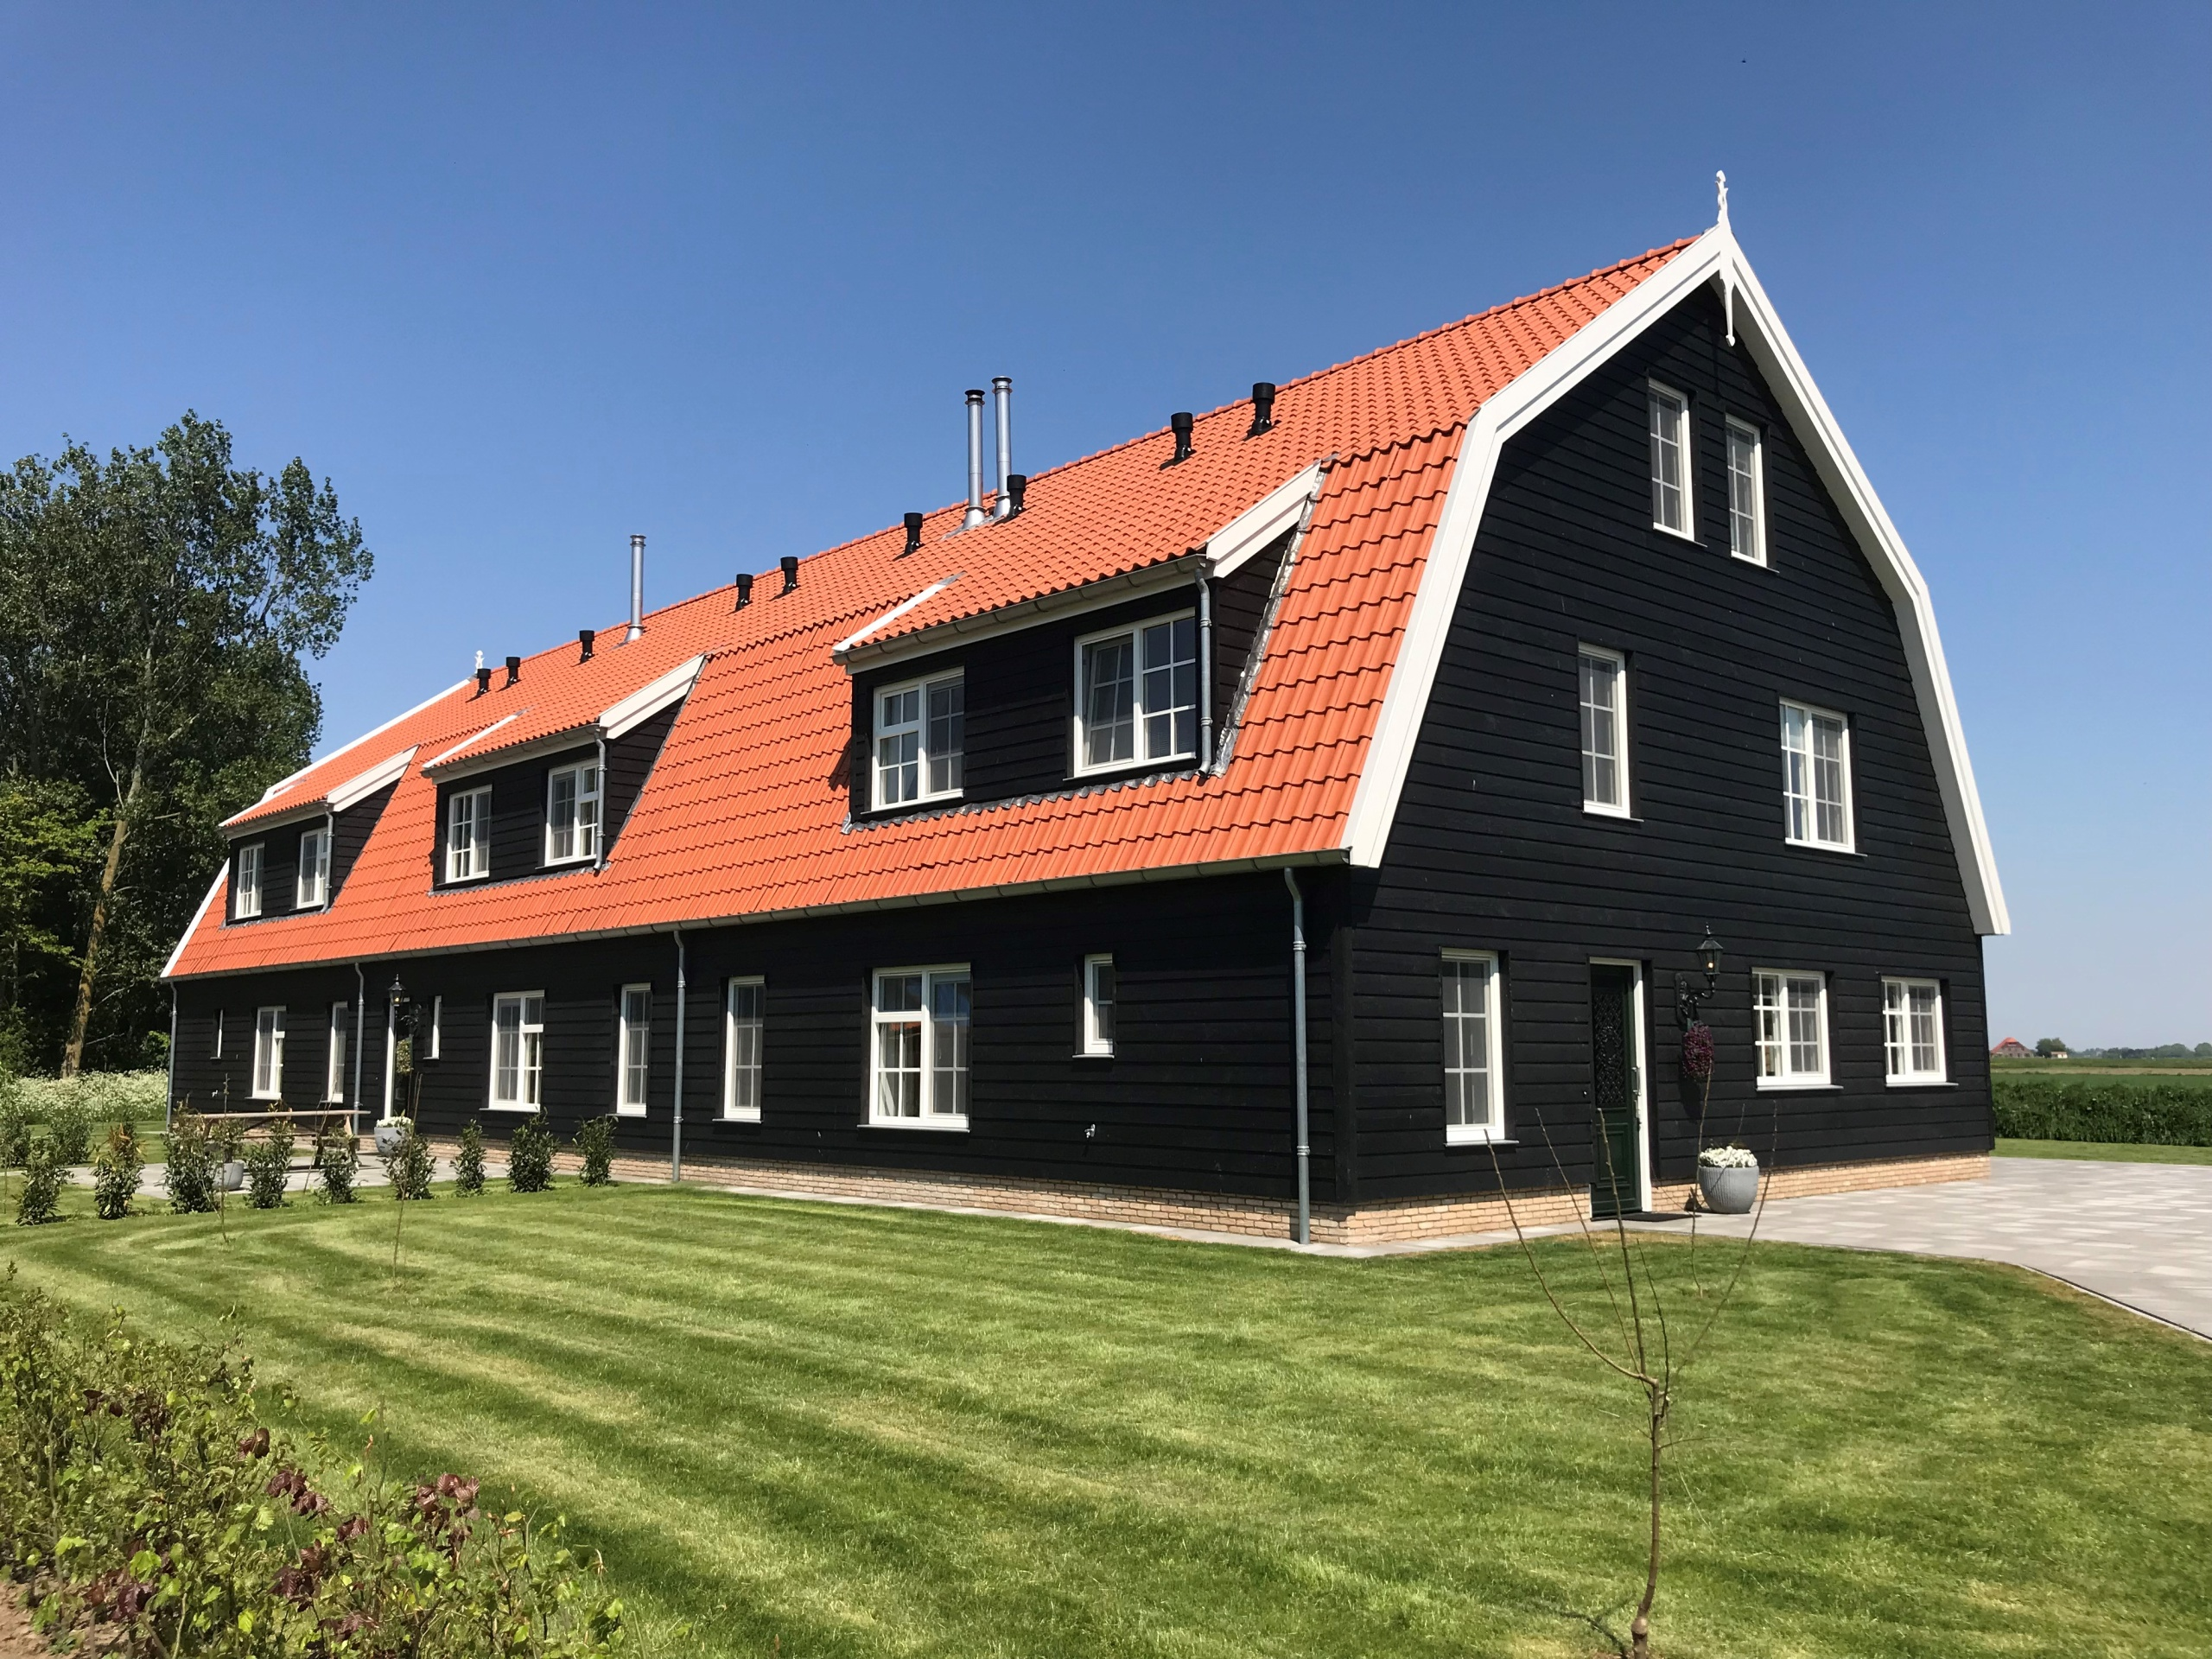 Modern group accommodation in beautiful rural location nearby Den Burg